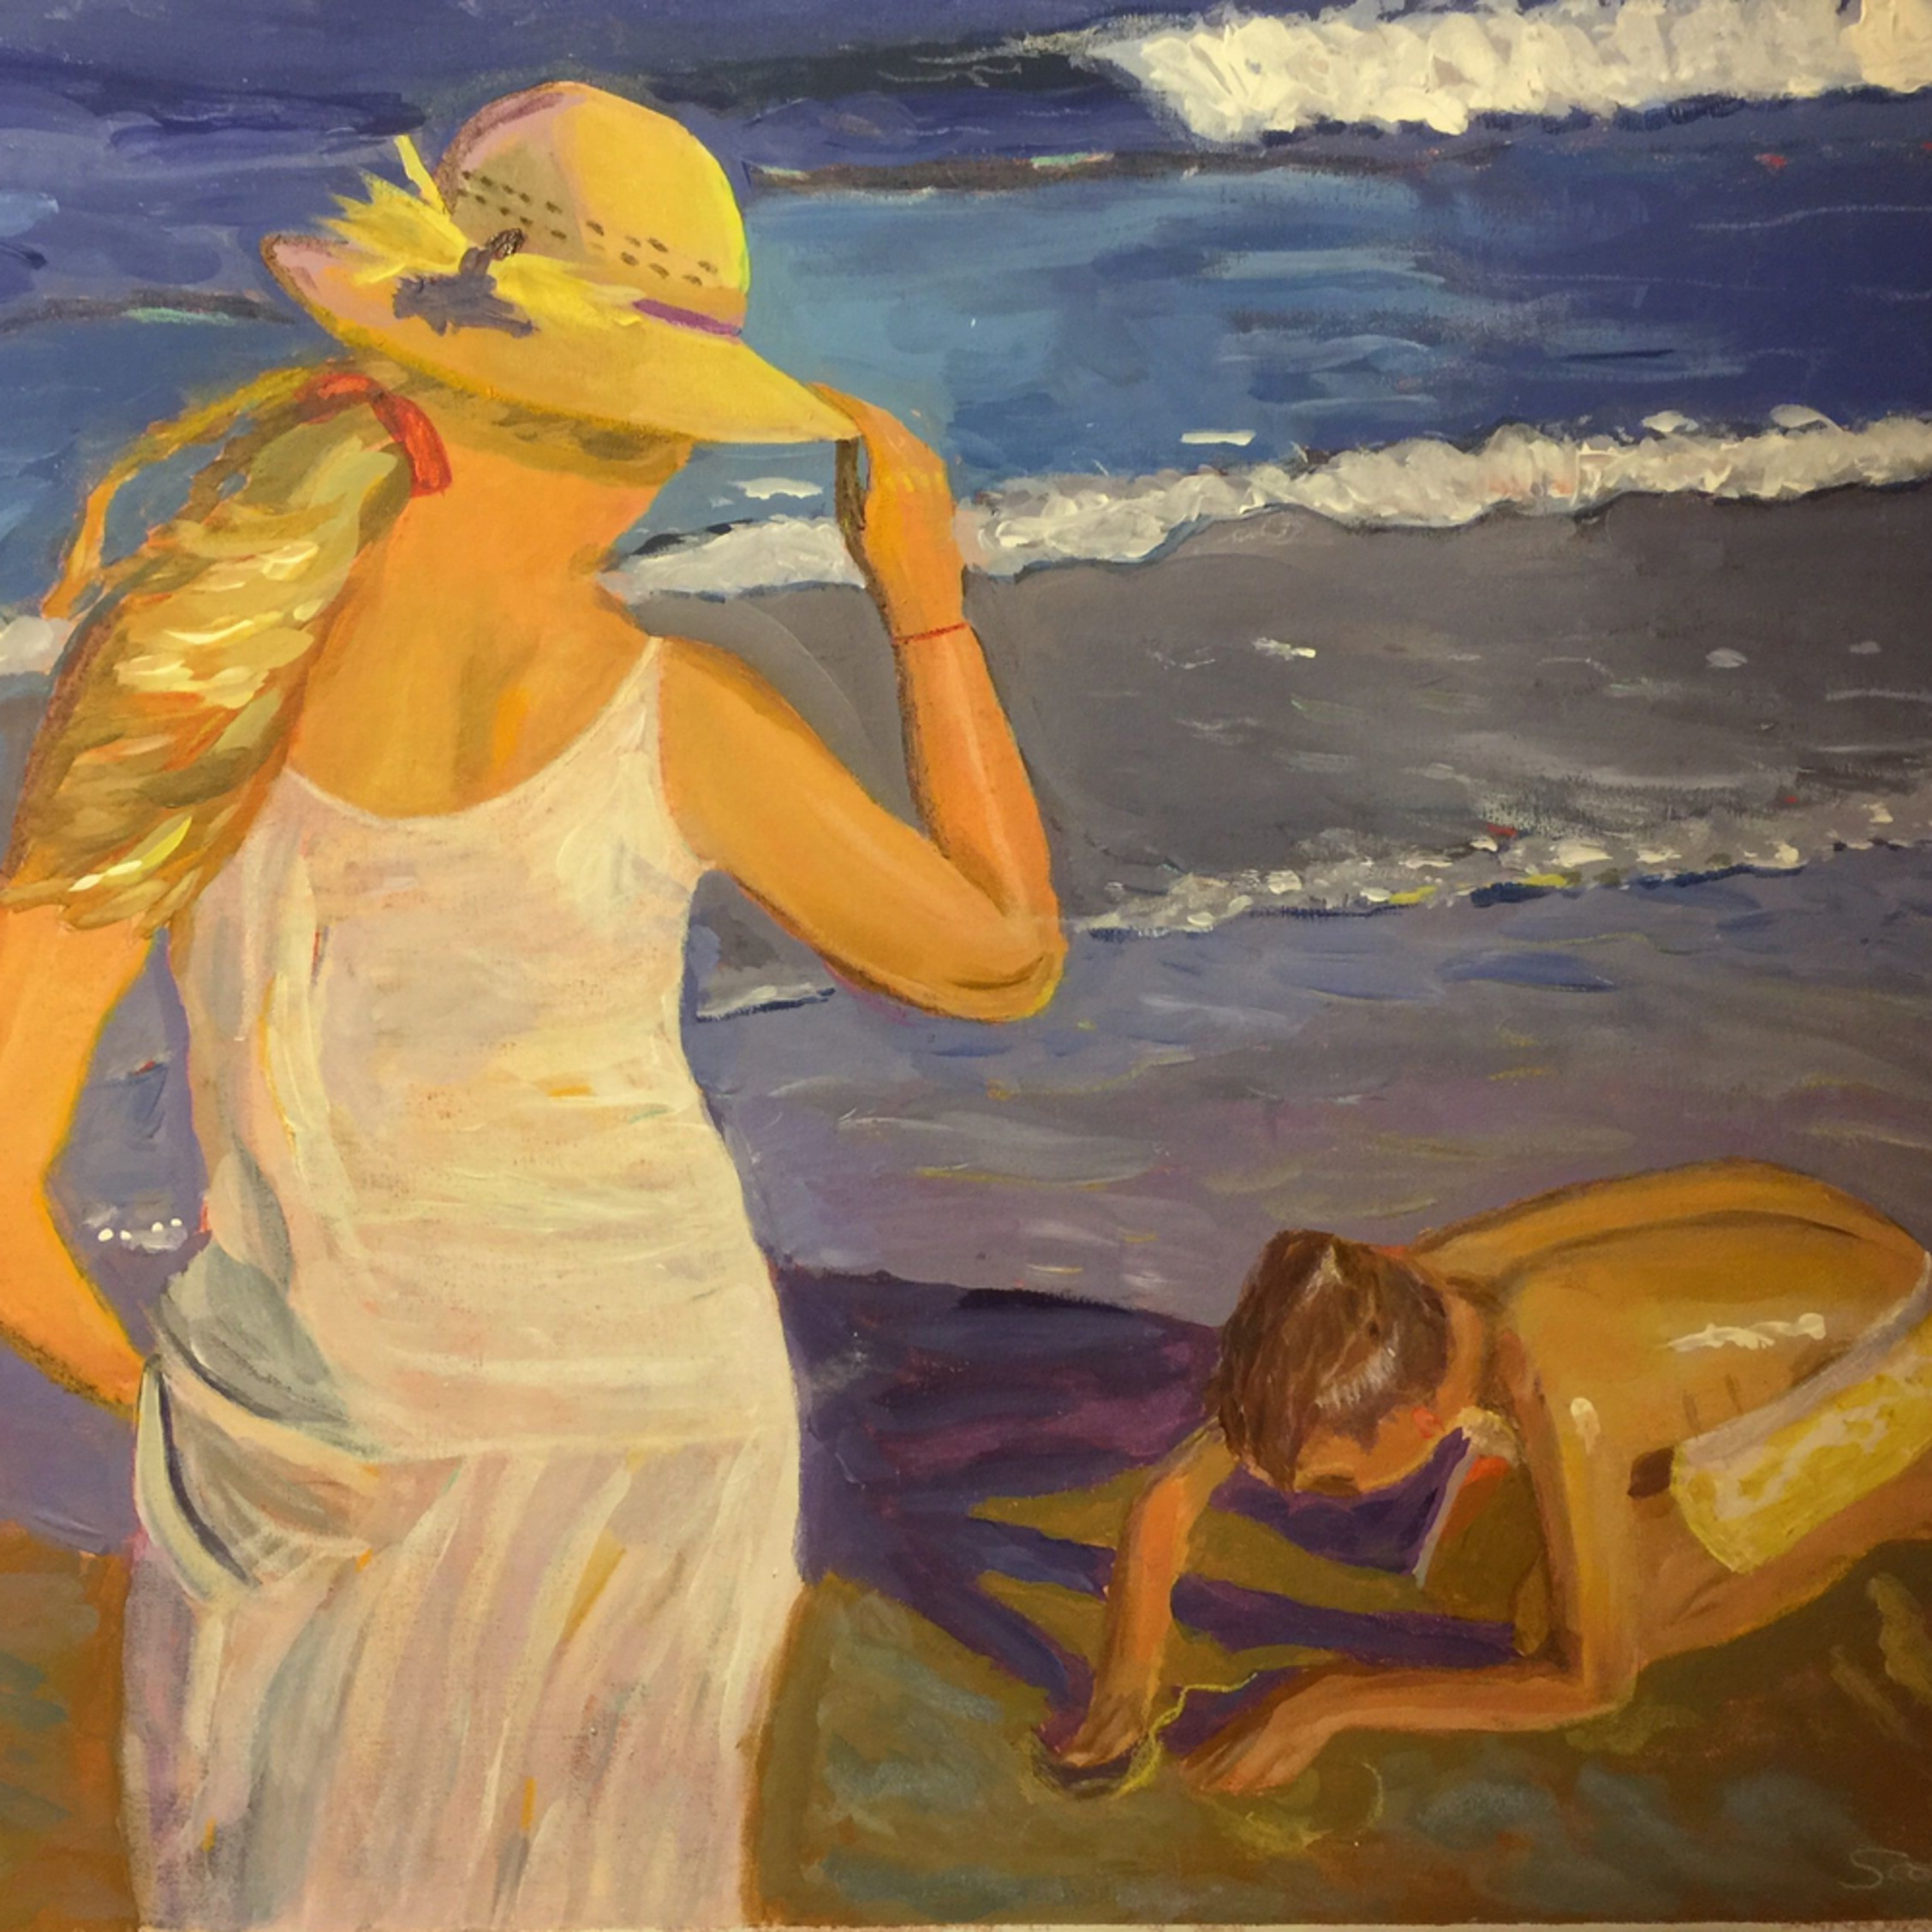 Homage to sorolla tiowj8